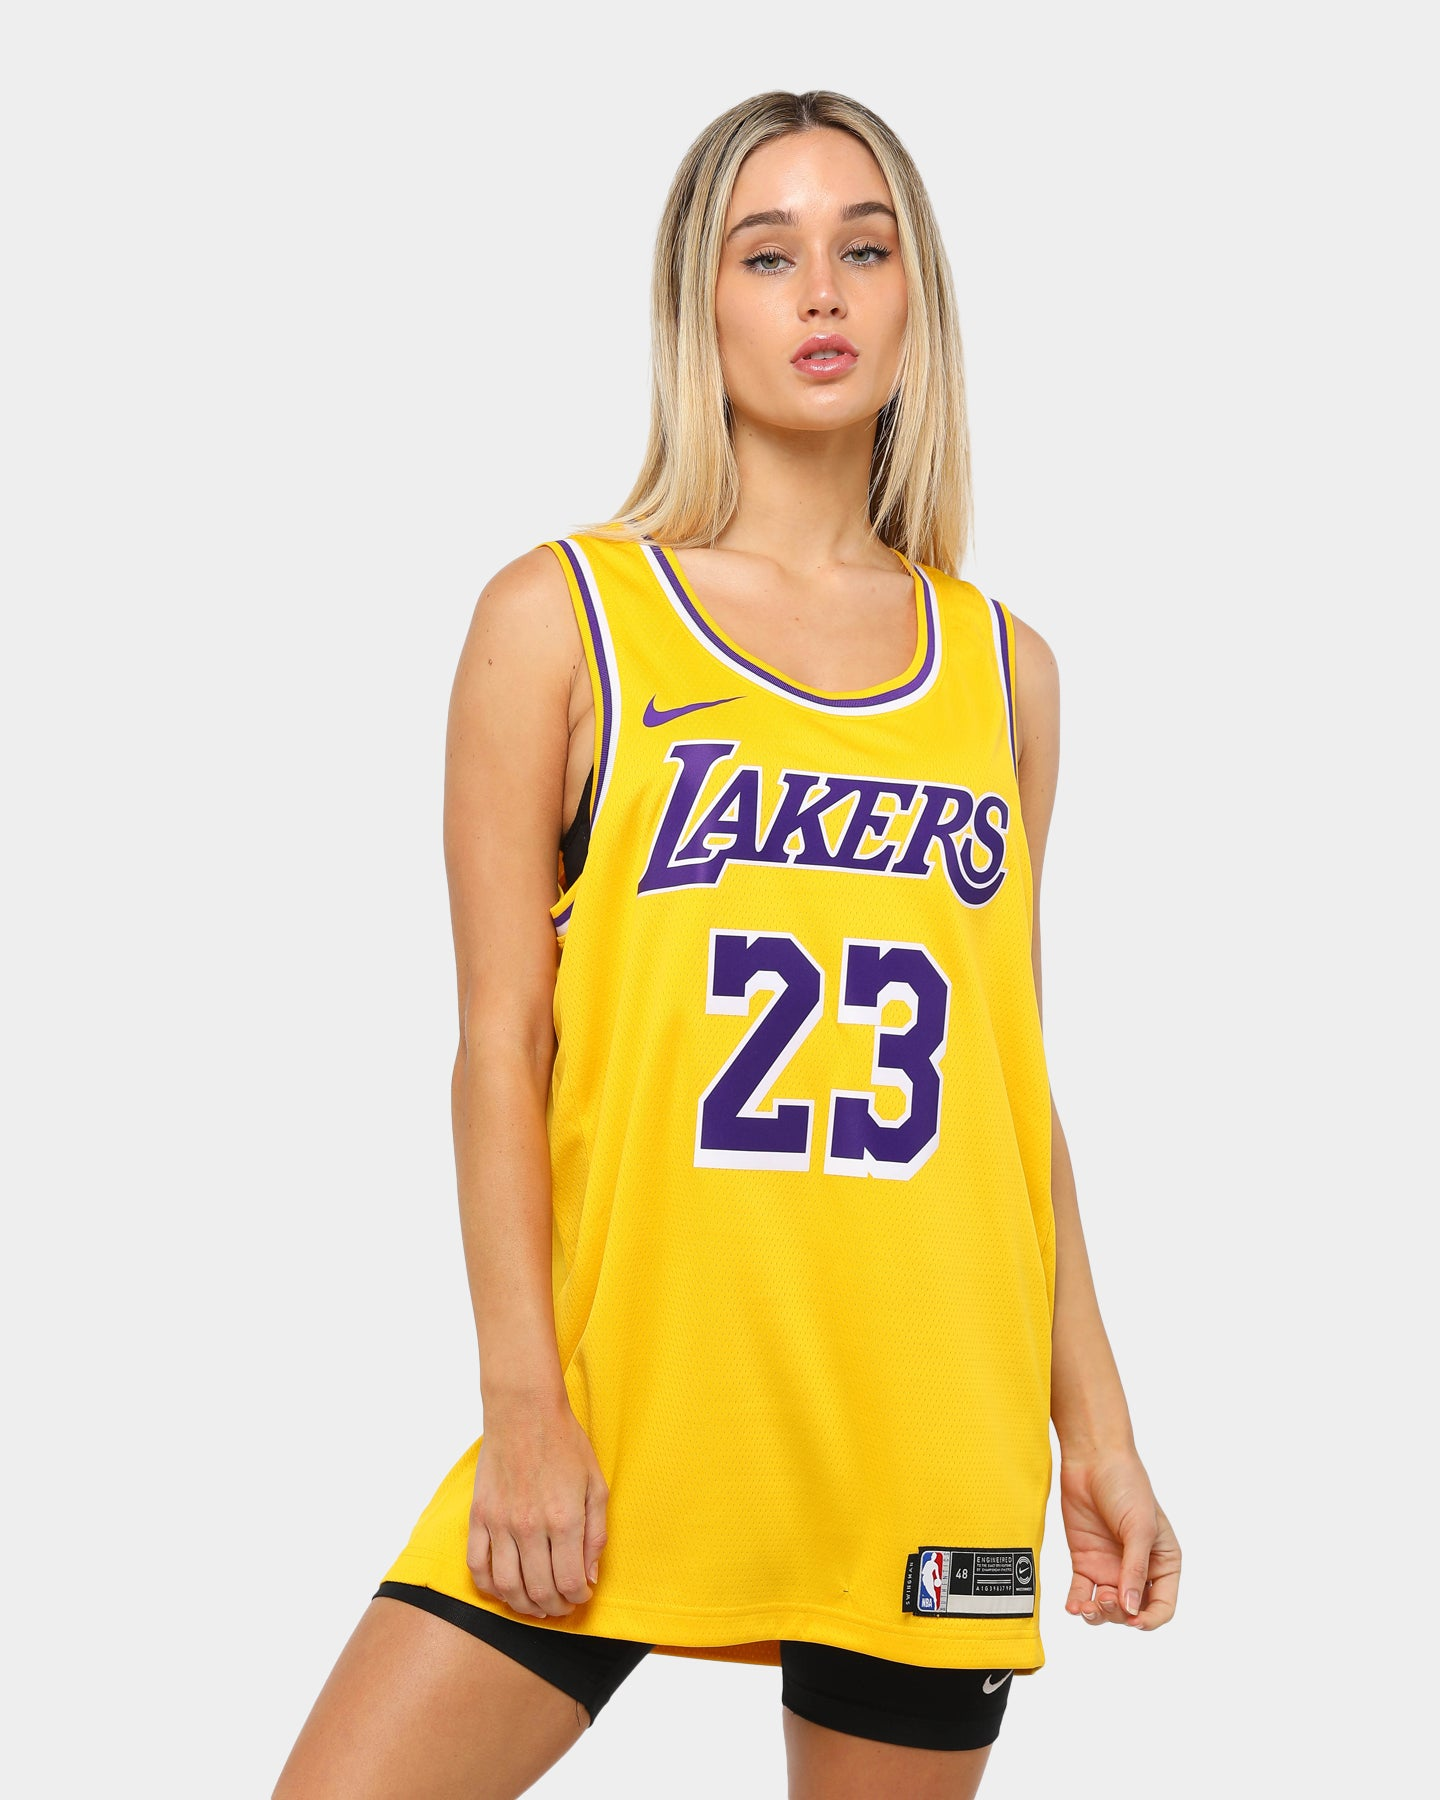 lakers female jersey Shop Clothing & Shoes Online